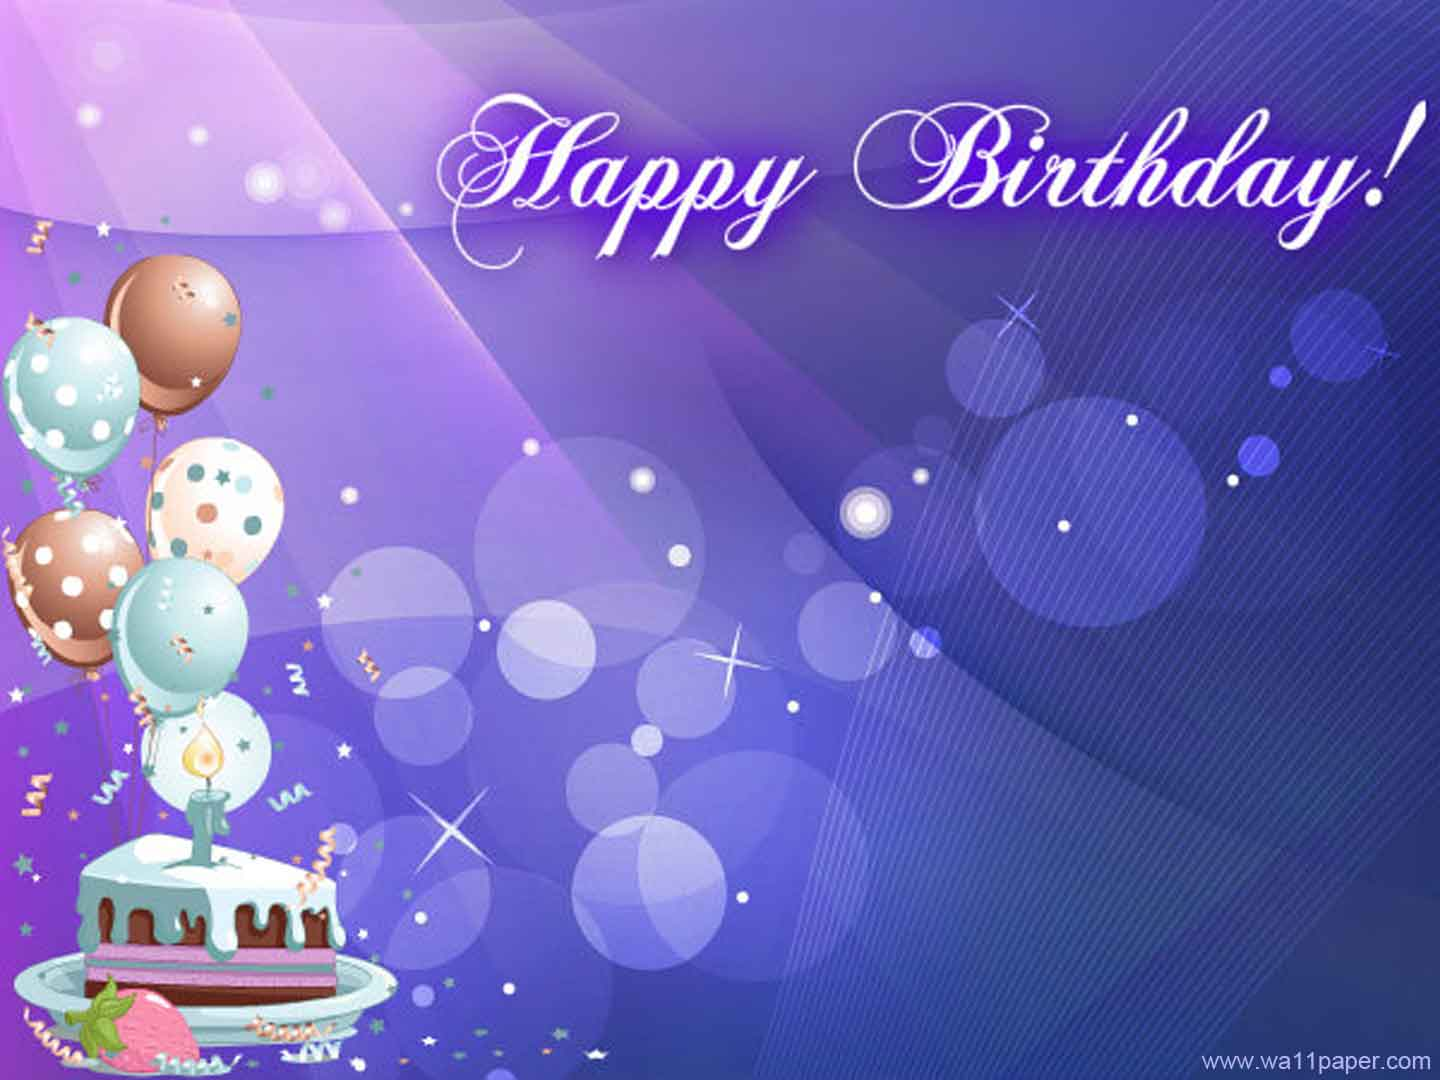 96 birthday hd wallpapers background images wallpaper - Happy birthday card wallpaper ...